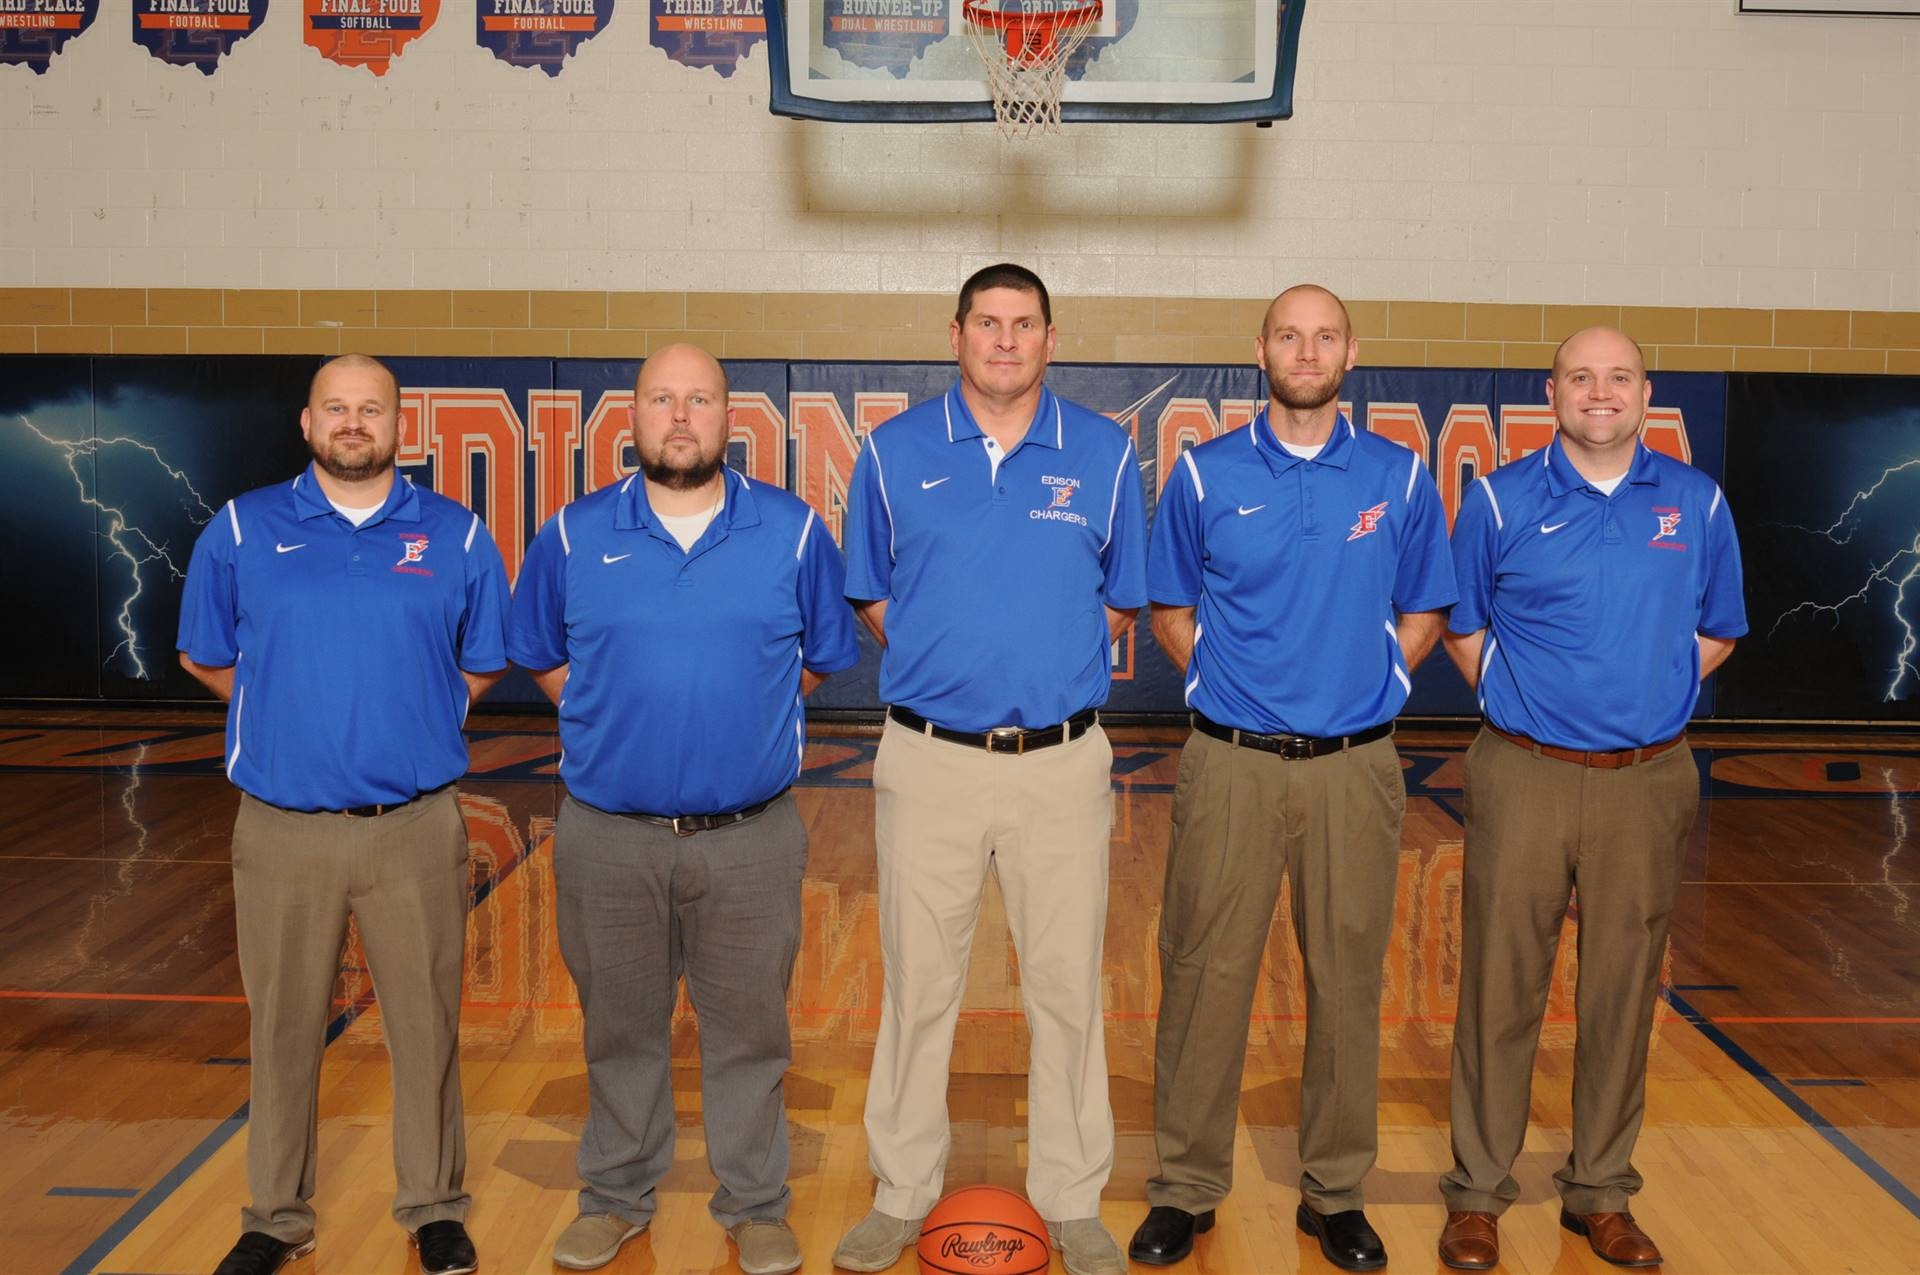 2019 Boys Basketball Coaching Staff